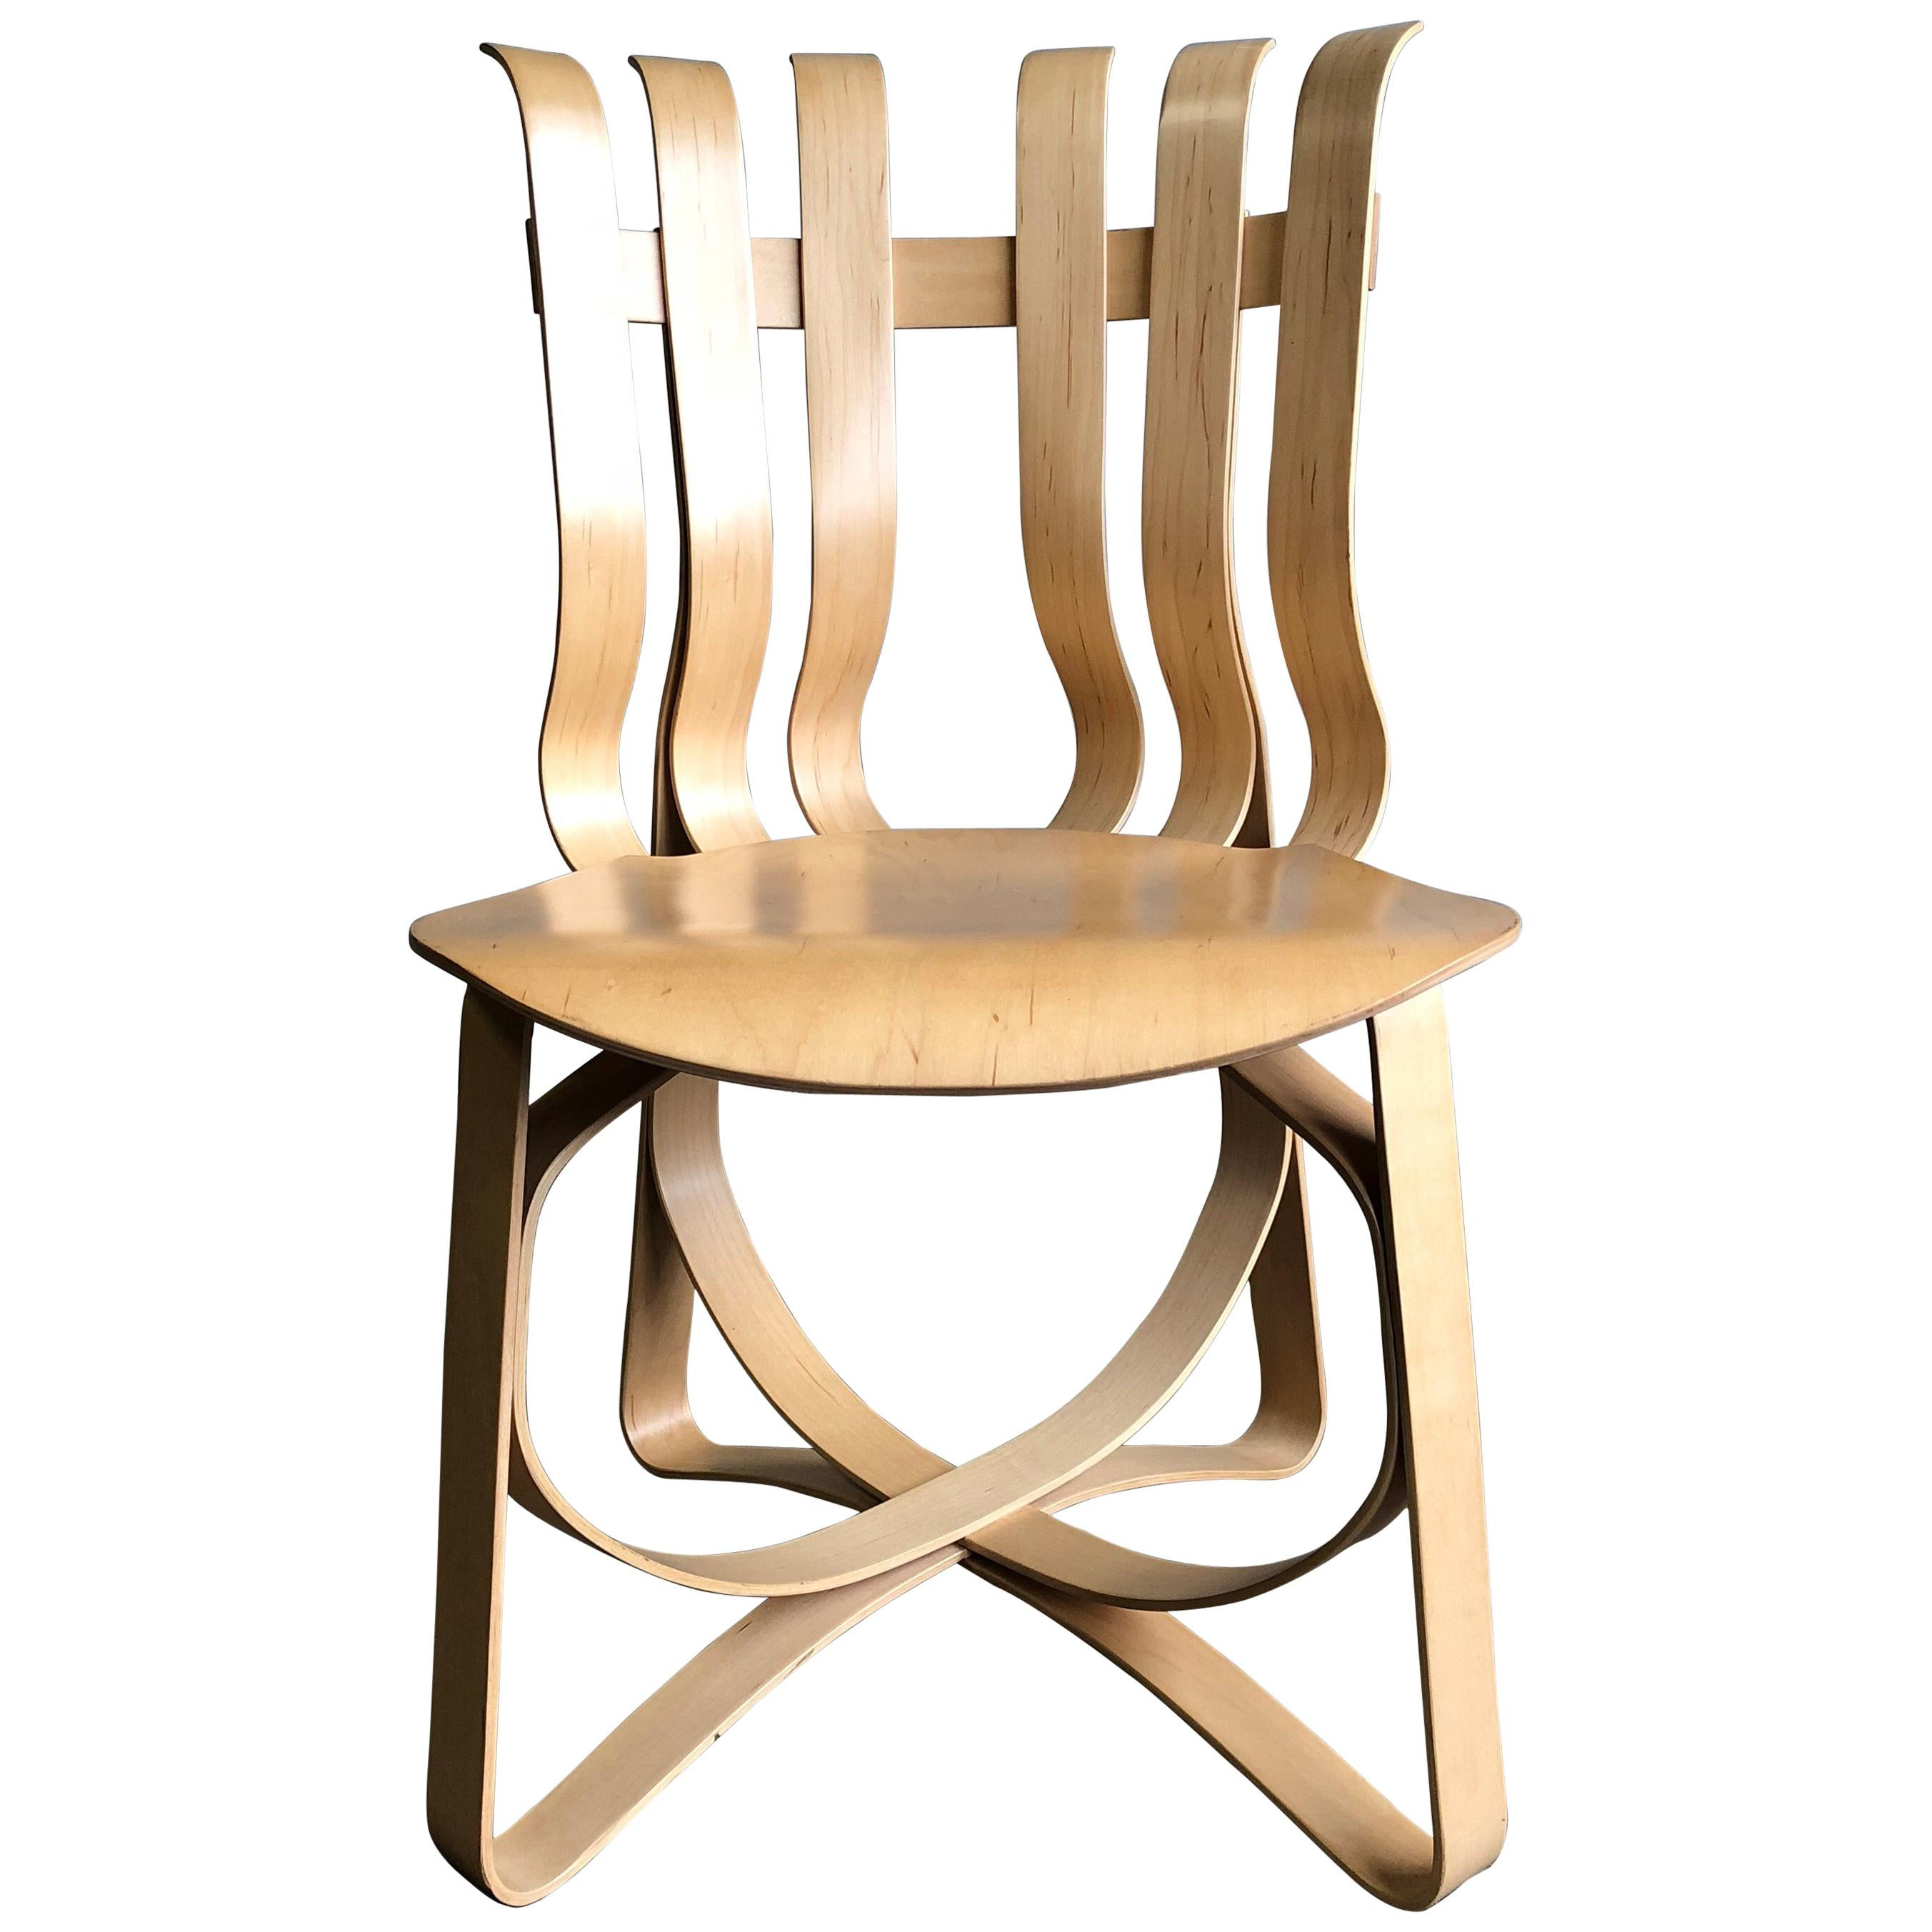 frank gehry chair covers gold coast hat trick for sale at 1stdibs